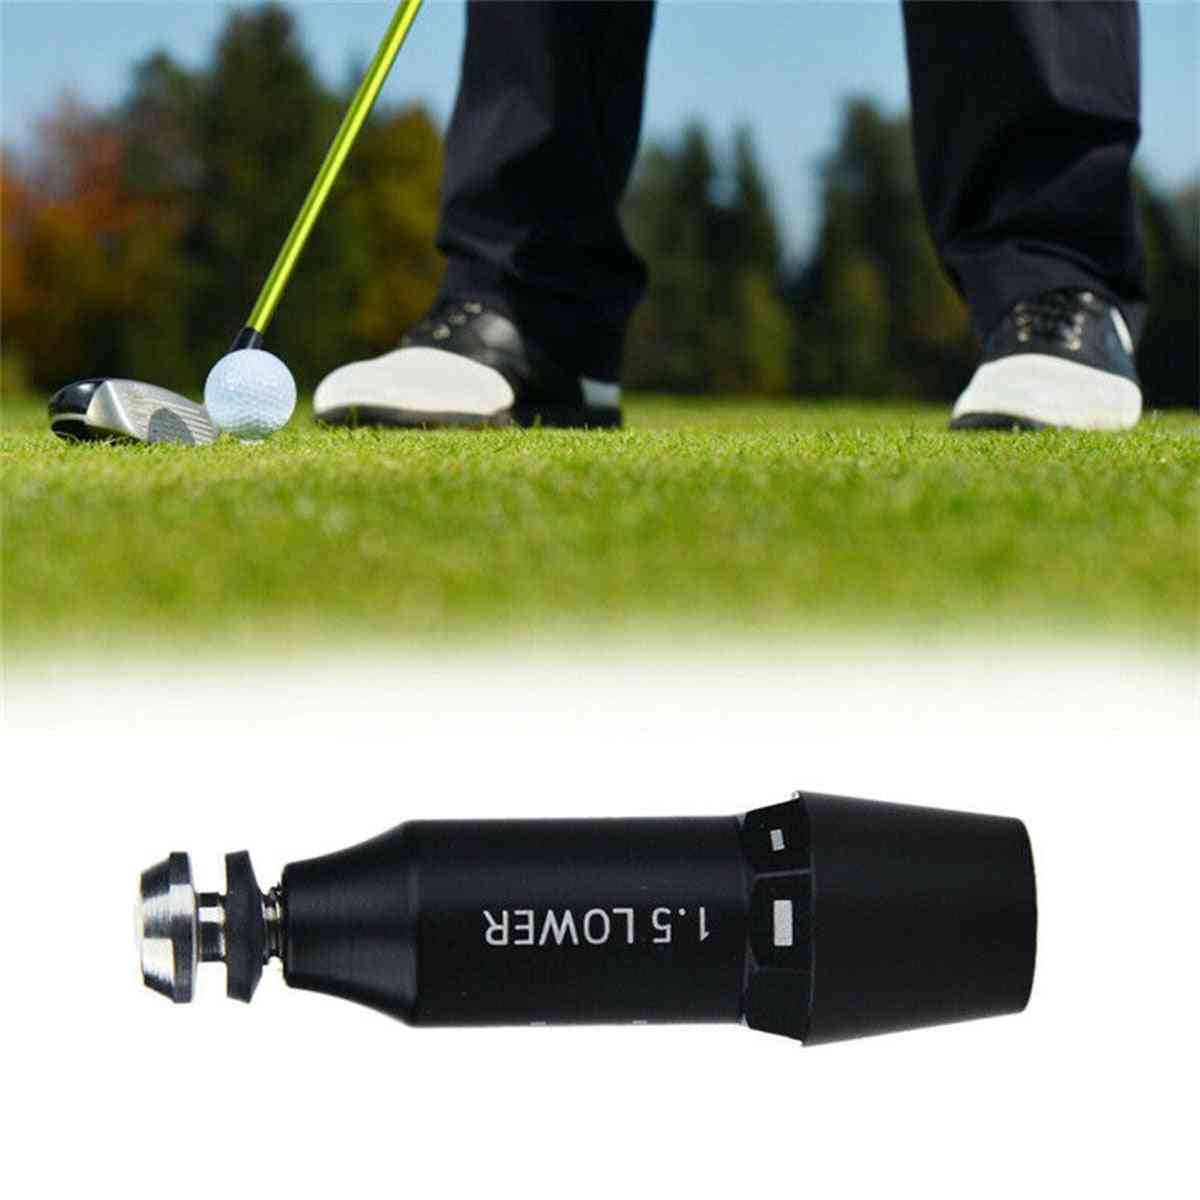 Golf Club Shaft Adapter Sleeve Replacement For Pxg Driver, Fairway Wood